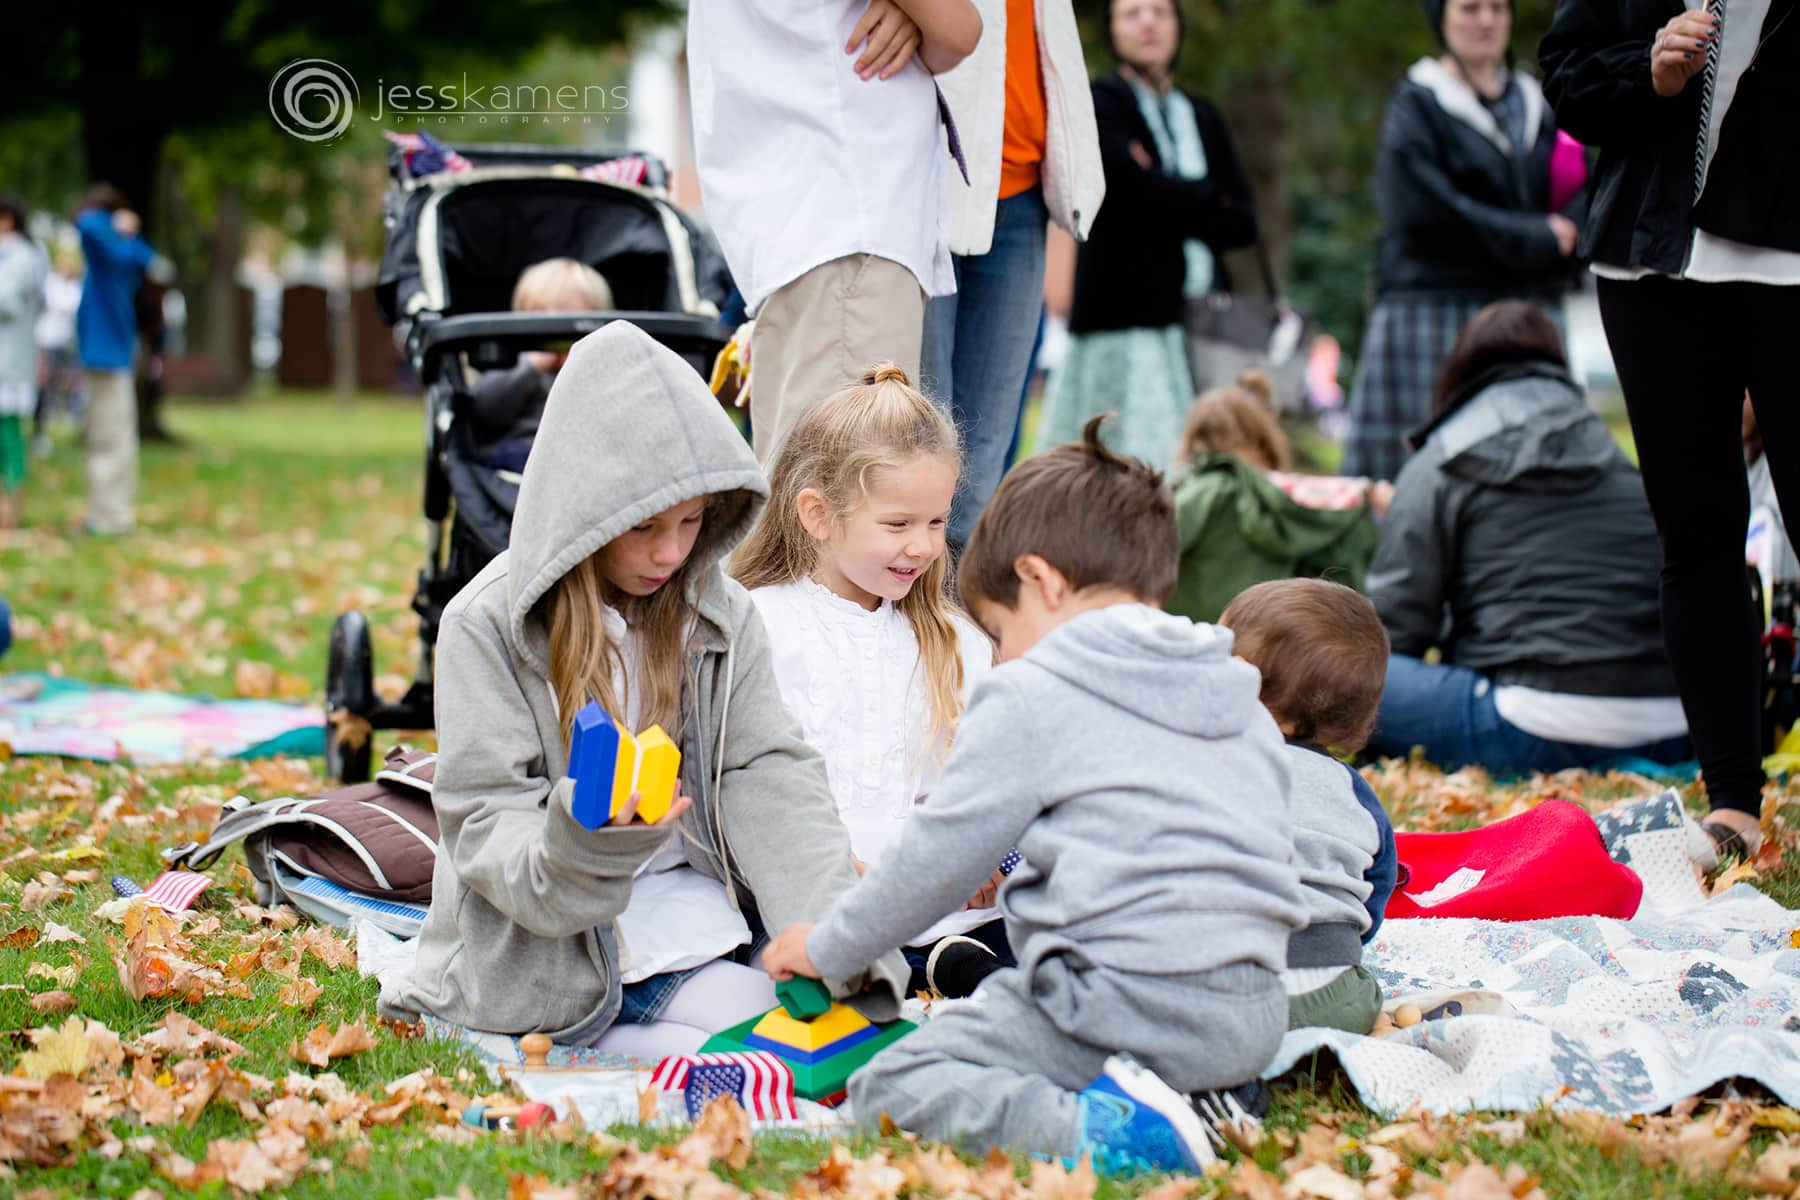 children play on a blanket together in a park